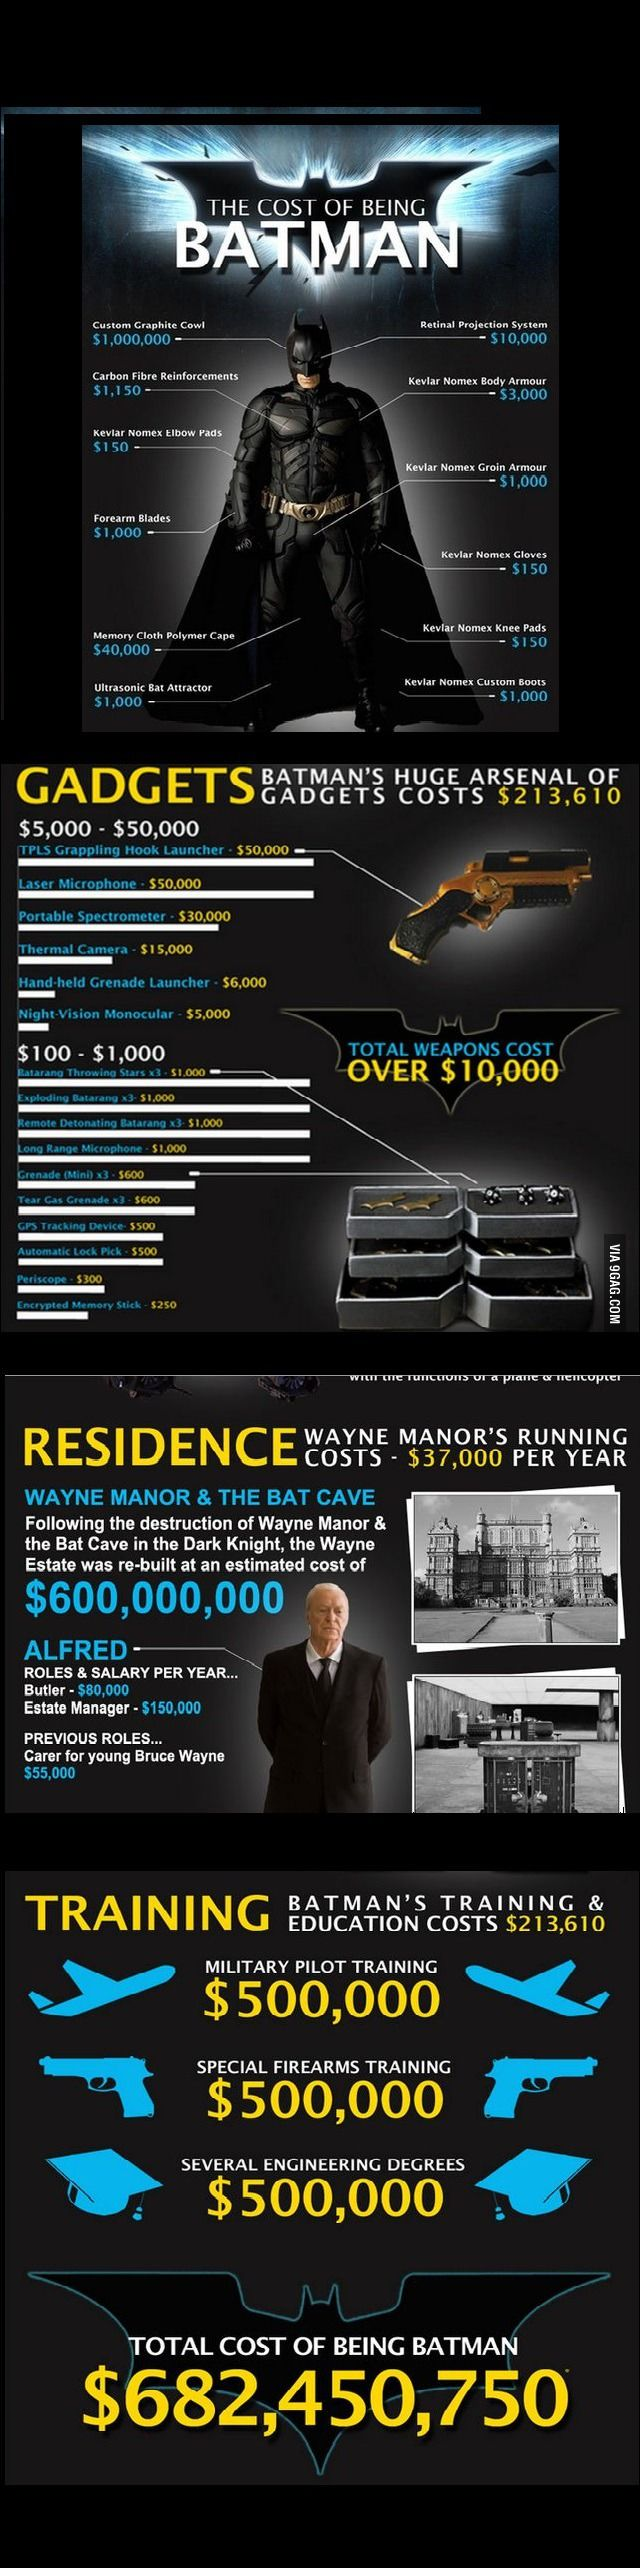 I want to be Batman, I only need 600 000 000$ - 9GAG